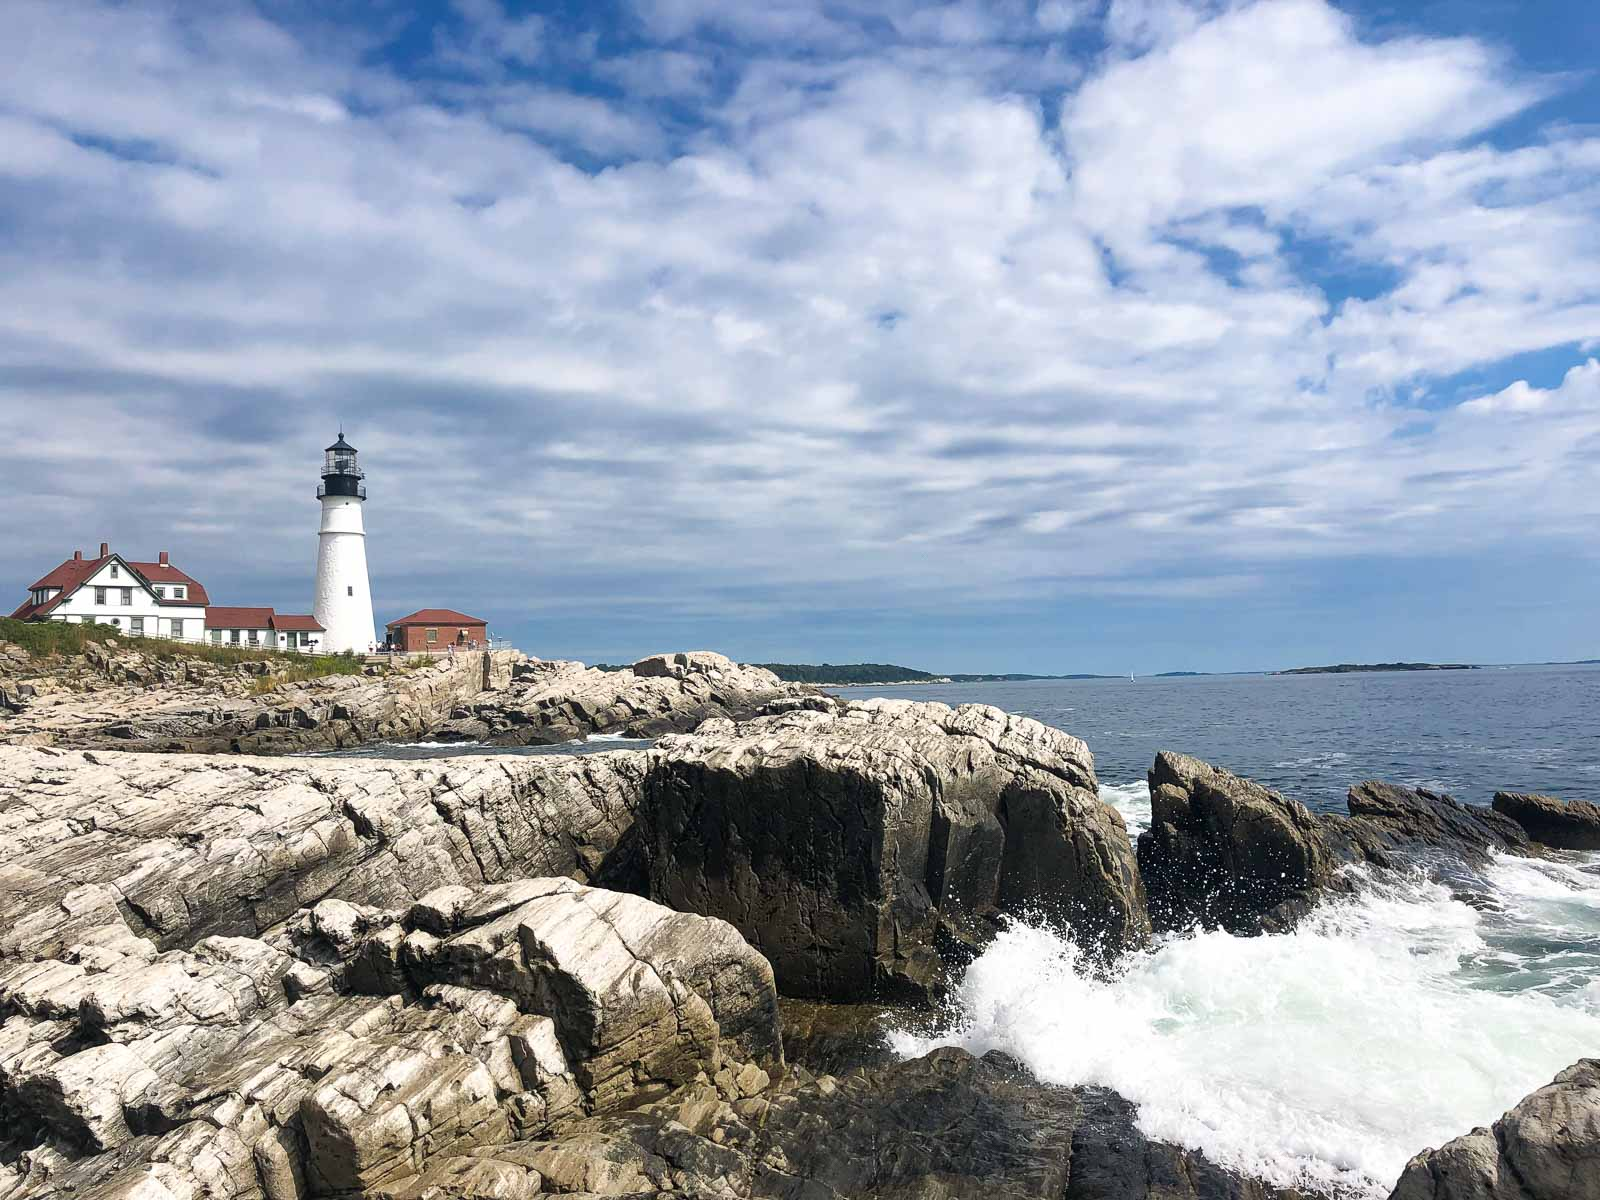 landscape photo of the portland head lighthouse with waves crashing on rocks